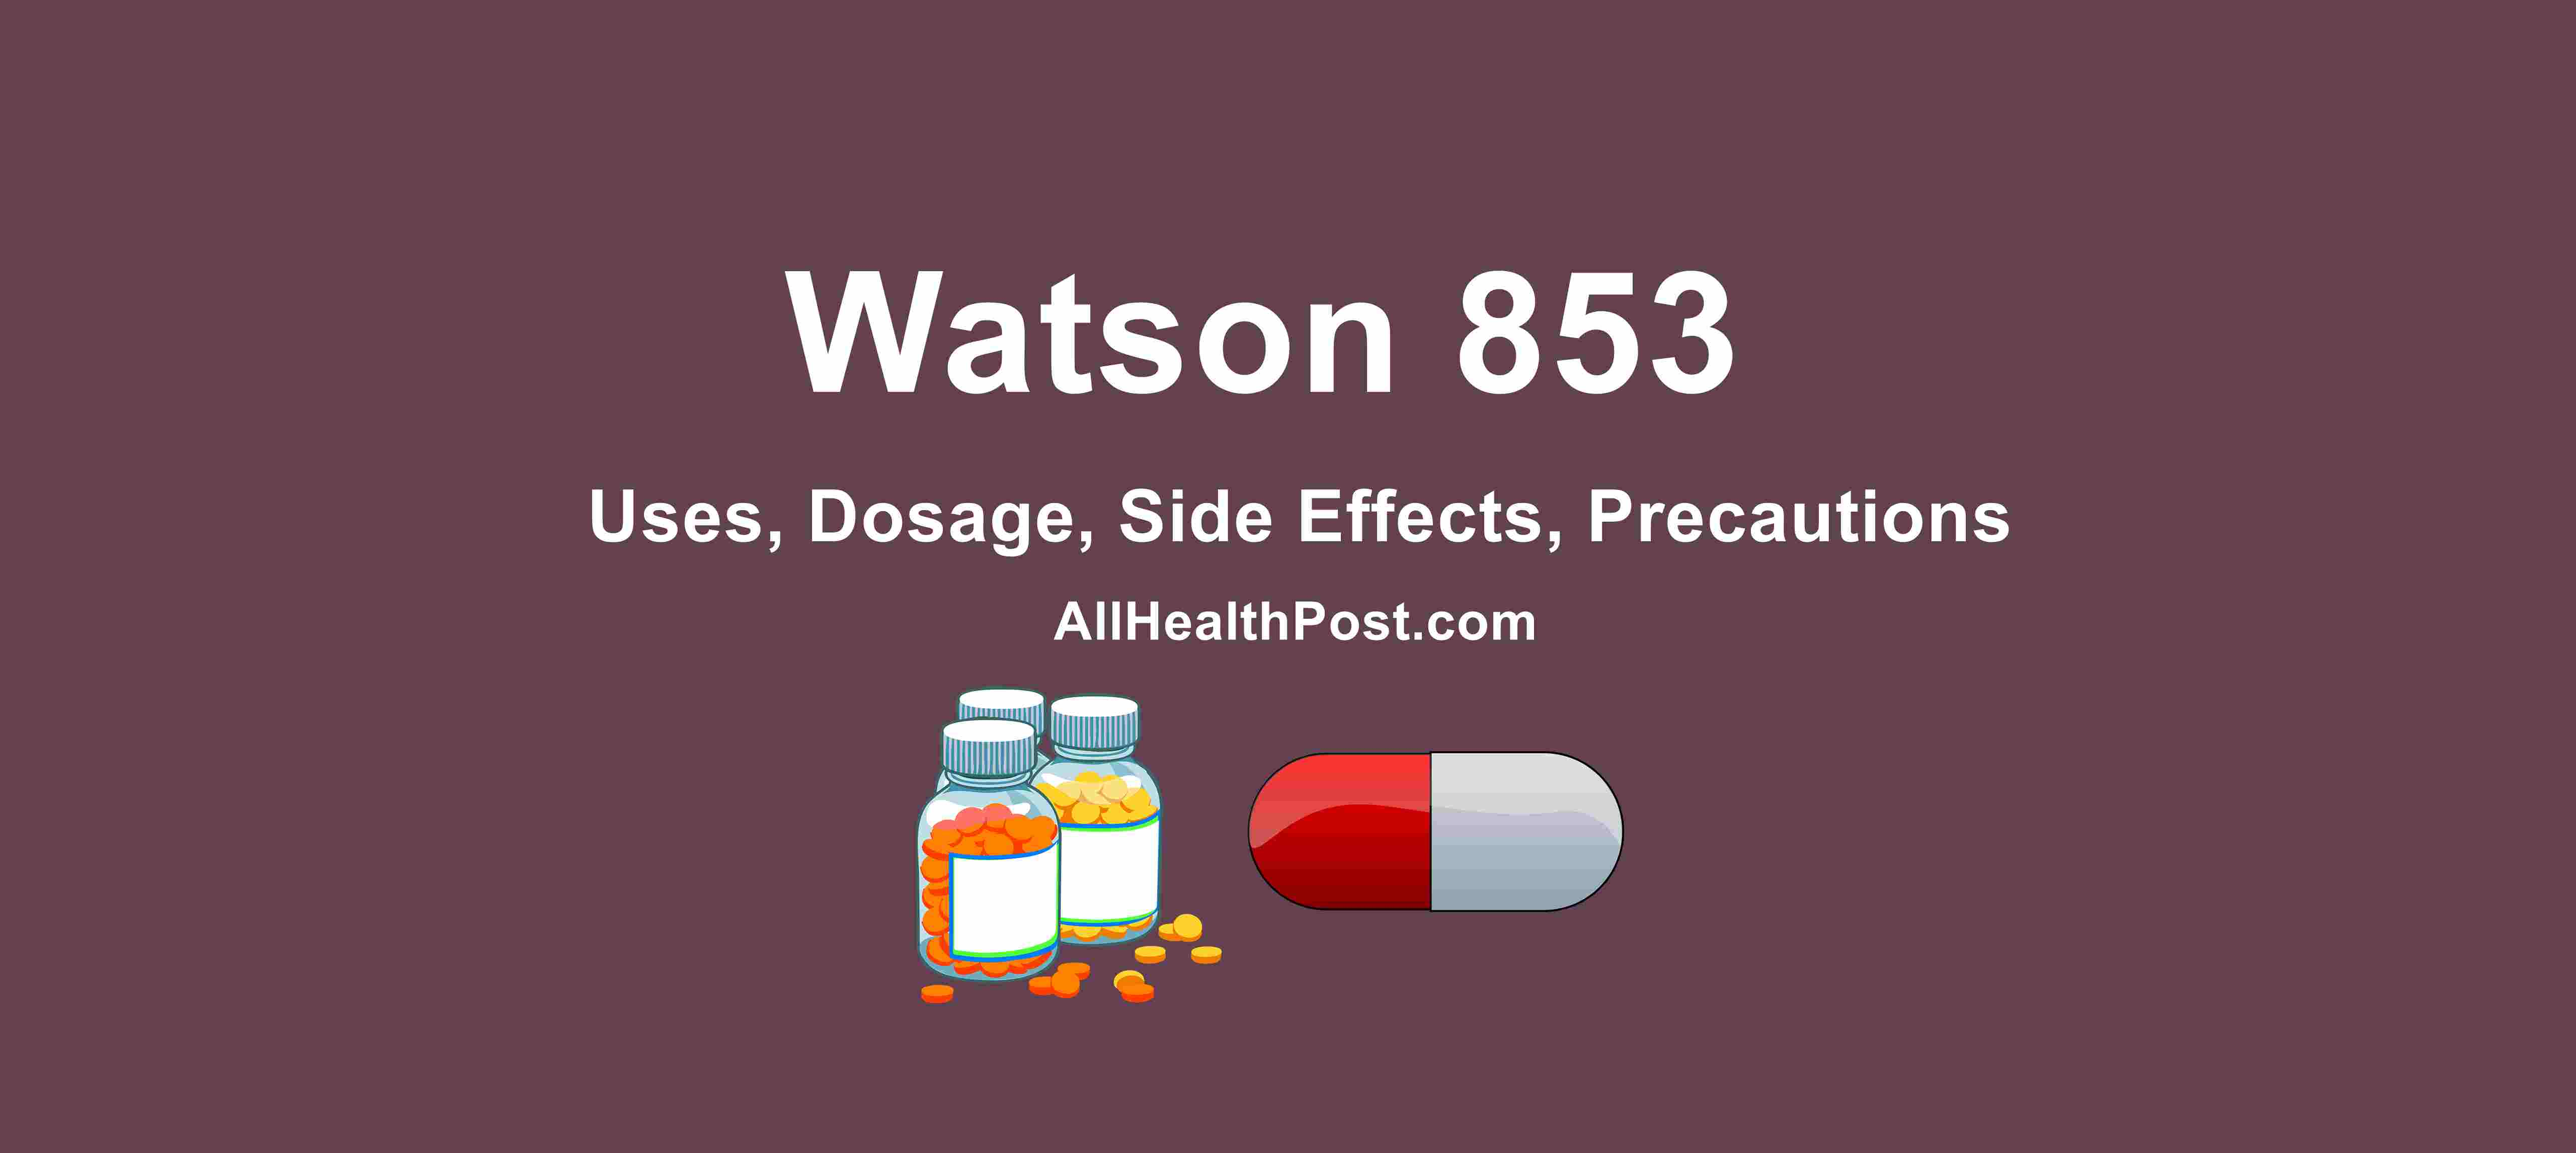 Watson 853: Uses, Dosage, Side Effects, Precautions